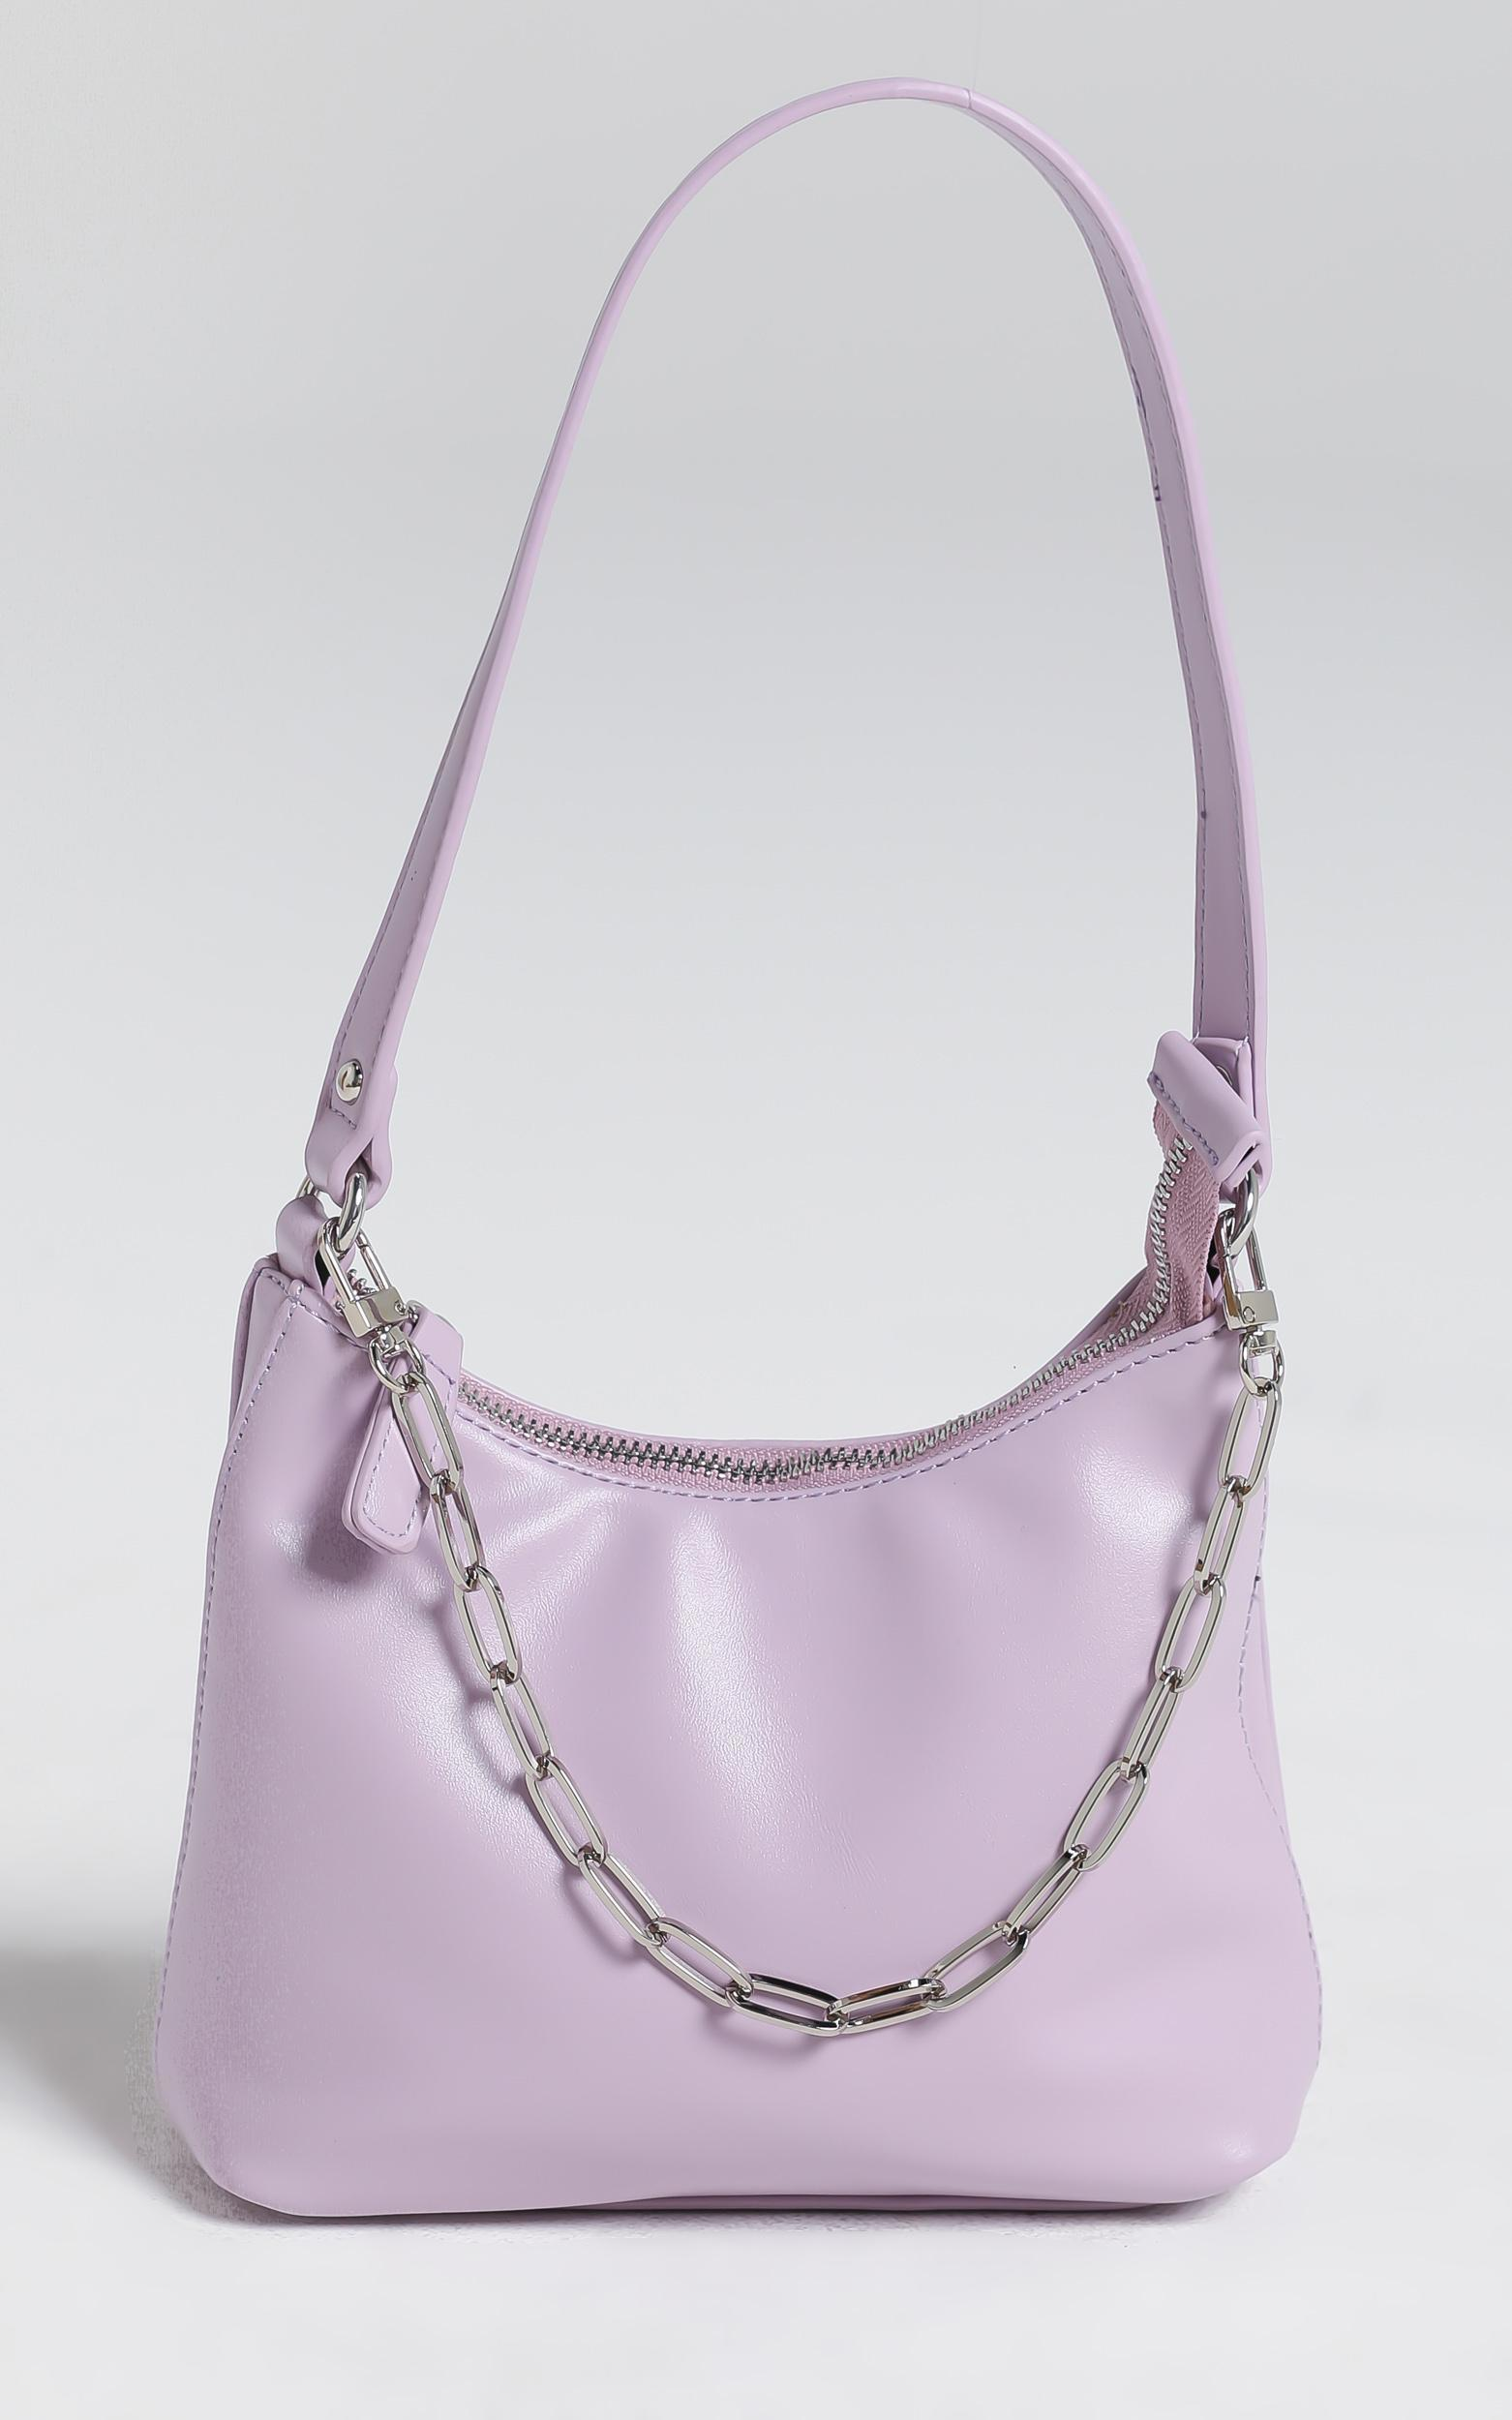 Georgia Mae - The Ryder Bag in Lilac, , hi-res image number null